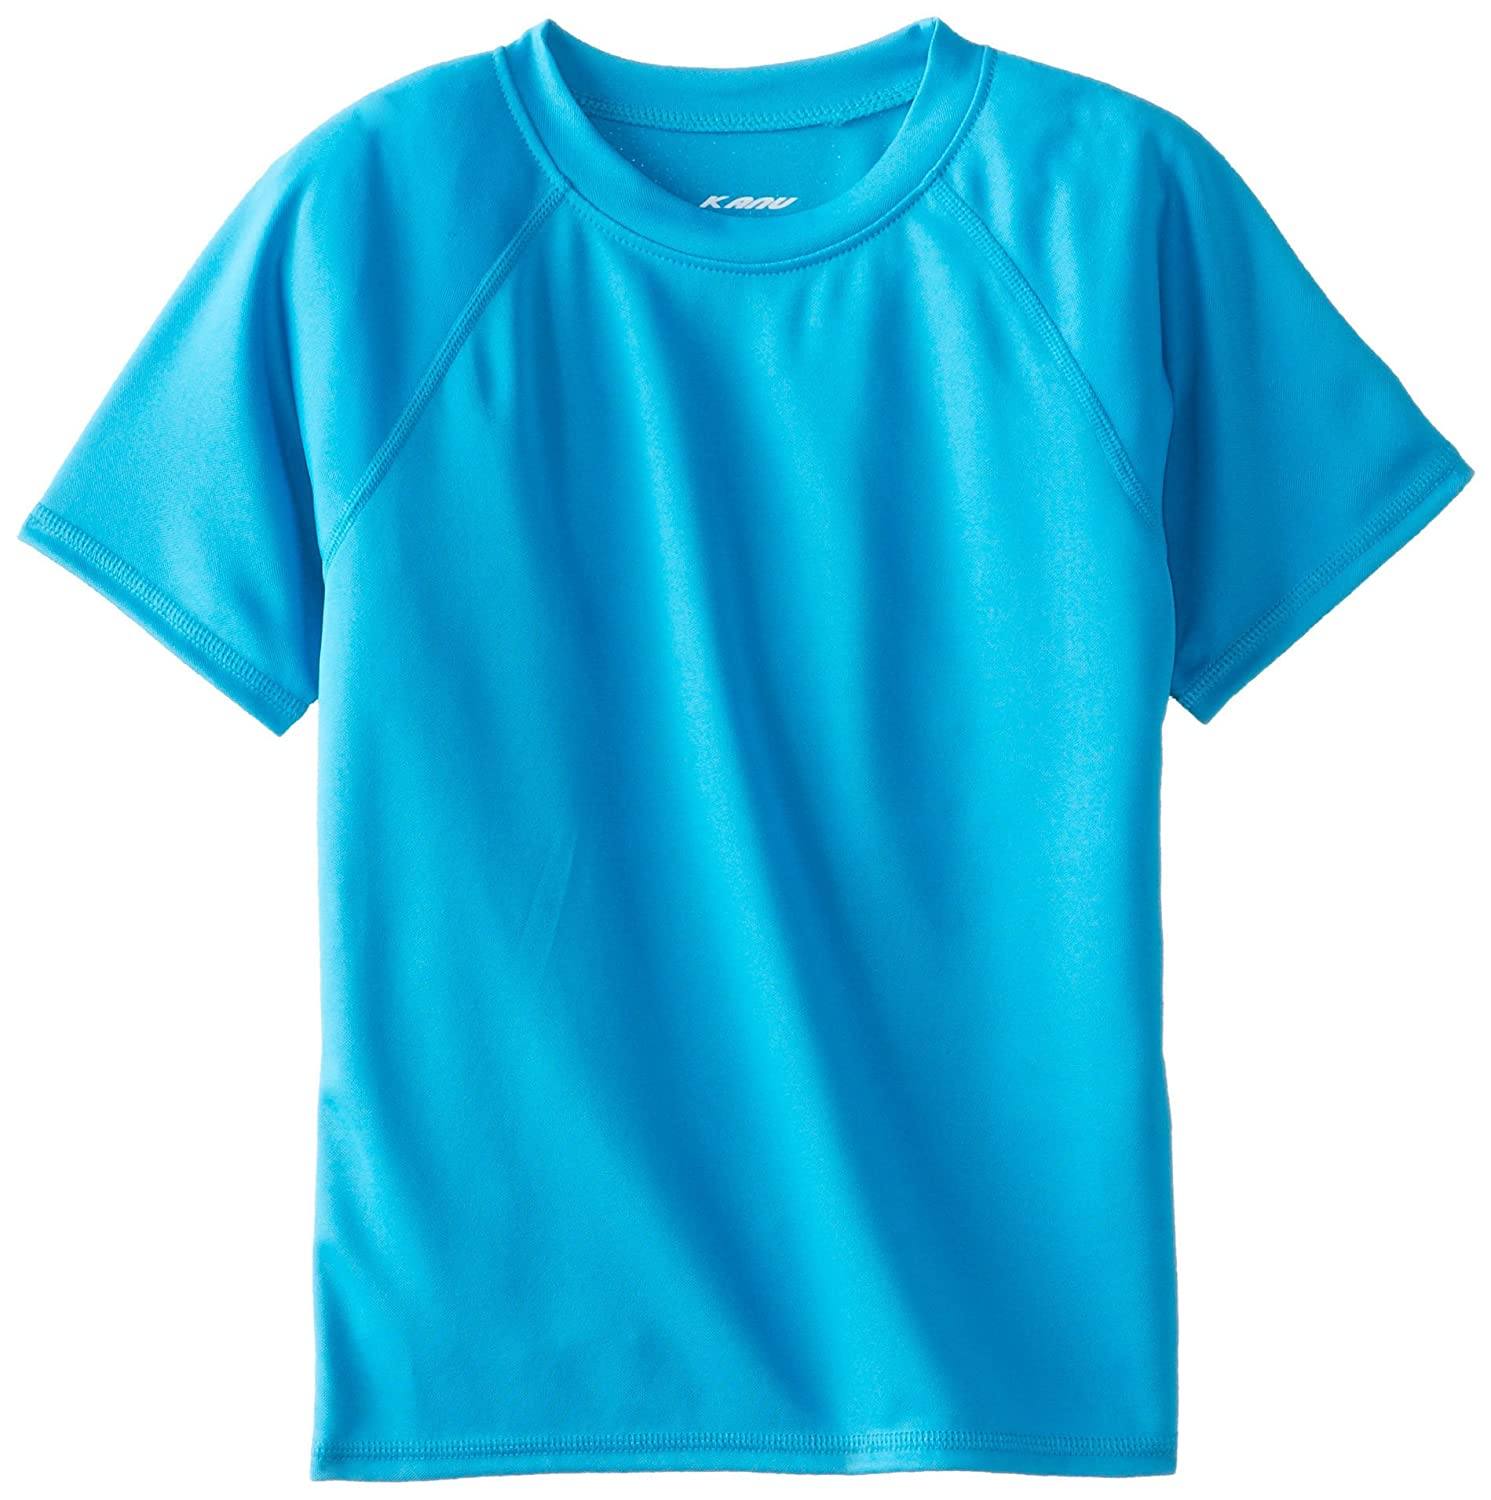 Kanu Surf Boys' Short-Sleeve Rashguard Swim Shirt